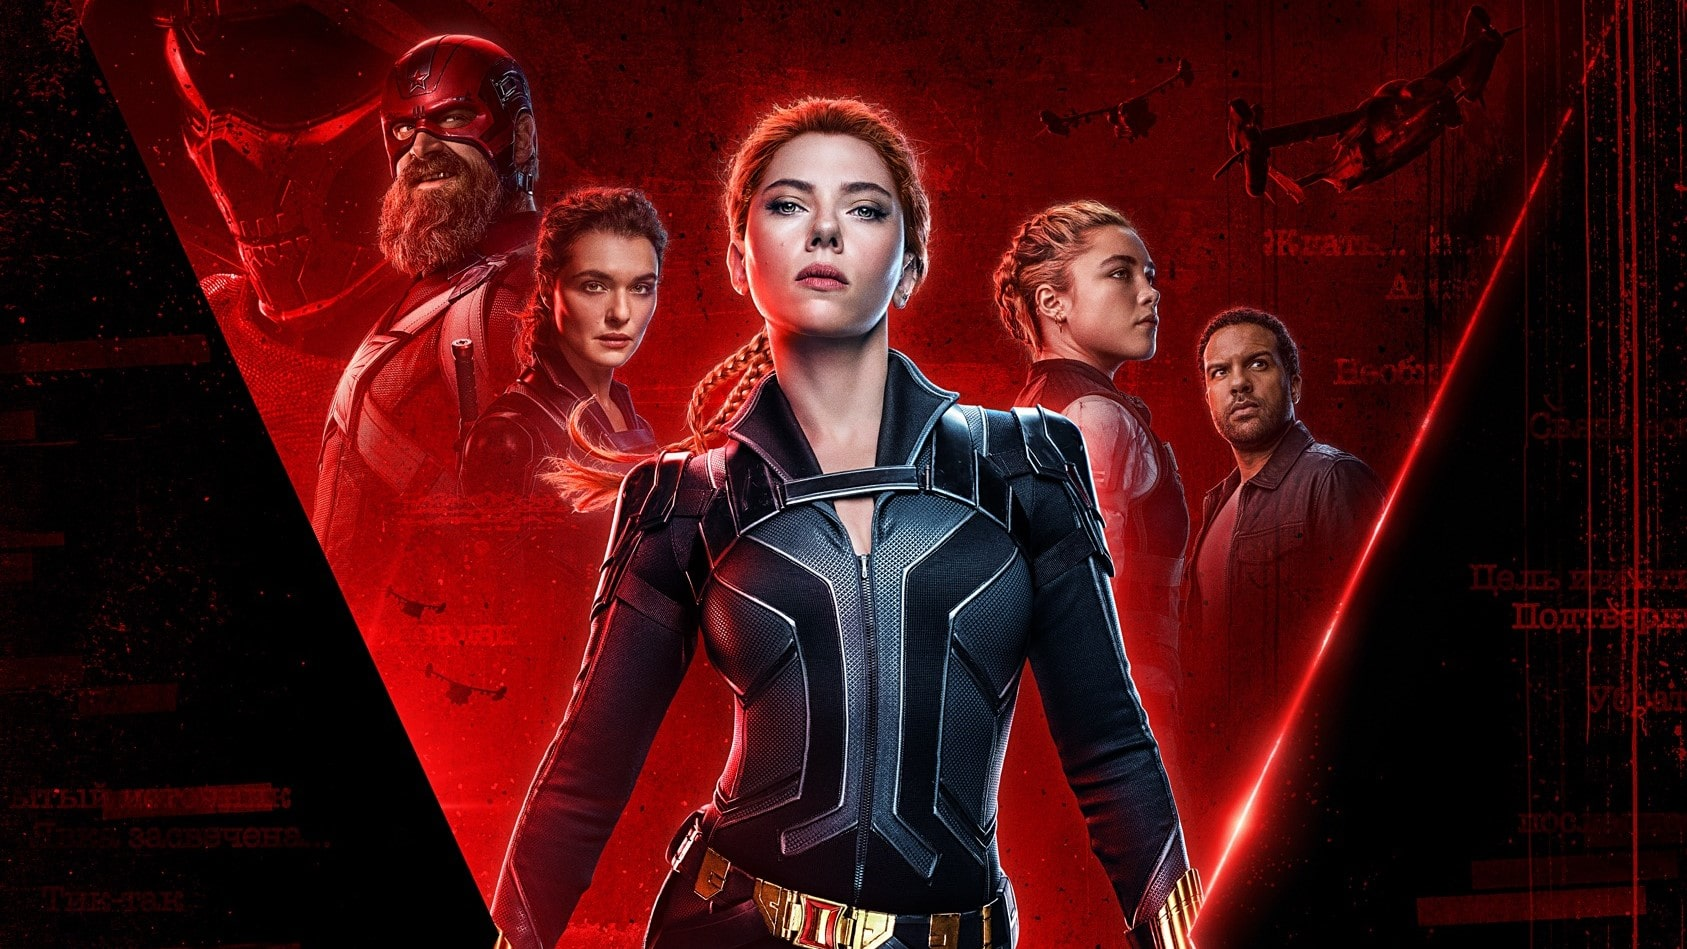 Black Widow Postponed to May 2021, Pixar's Soul to Stay in November 2020